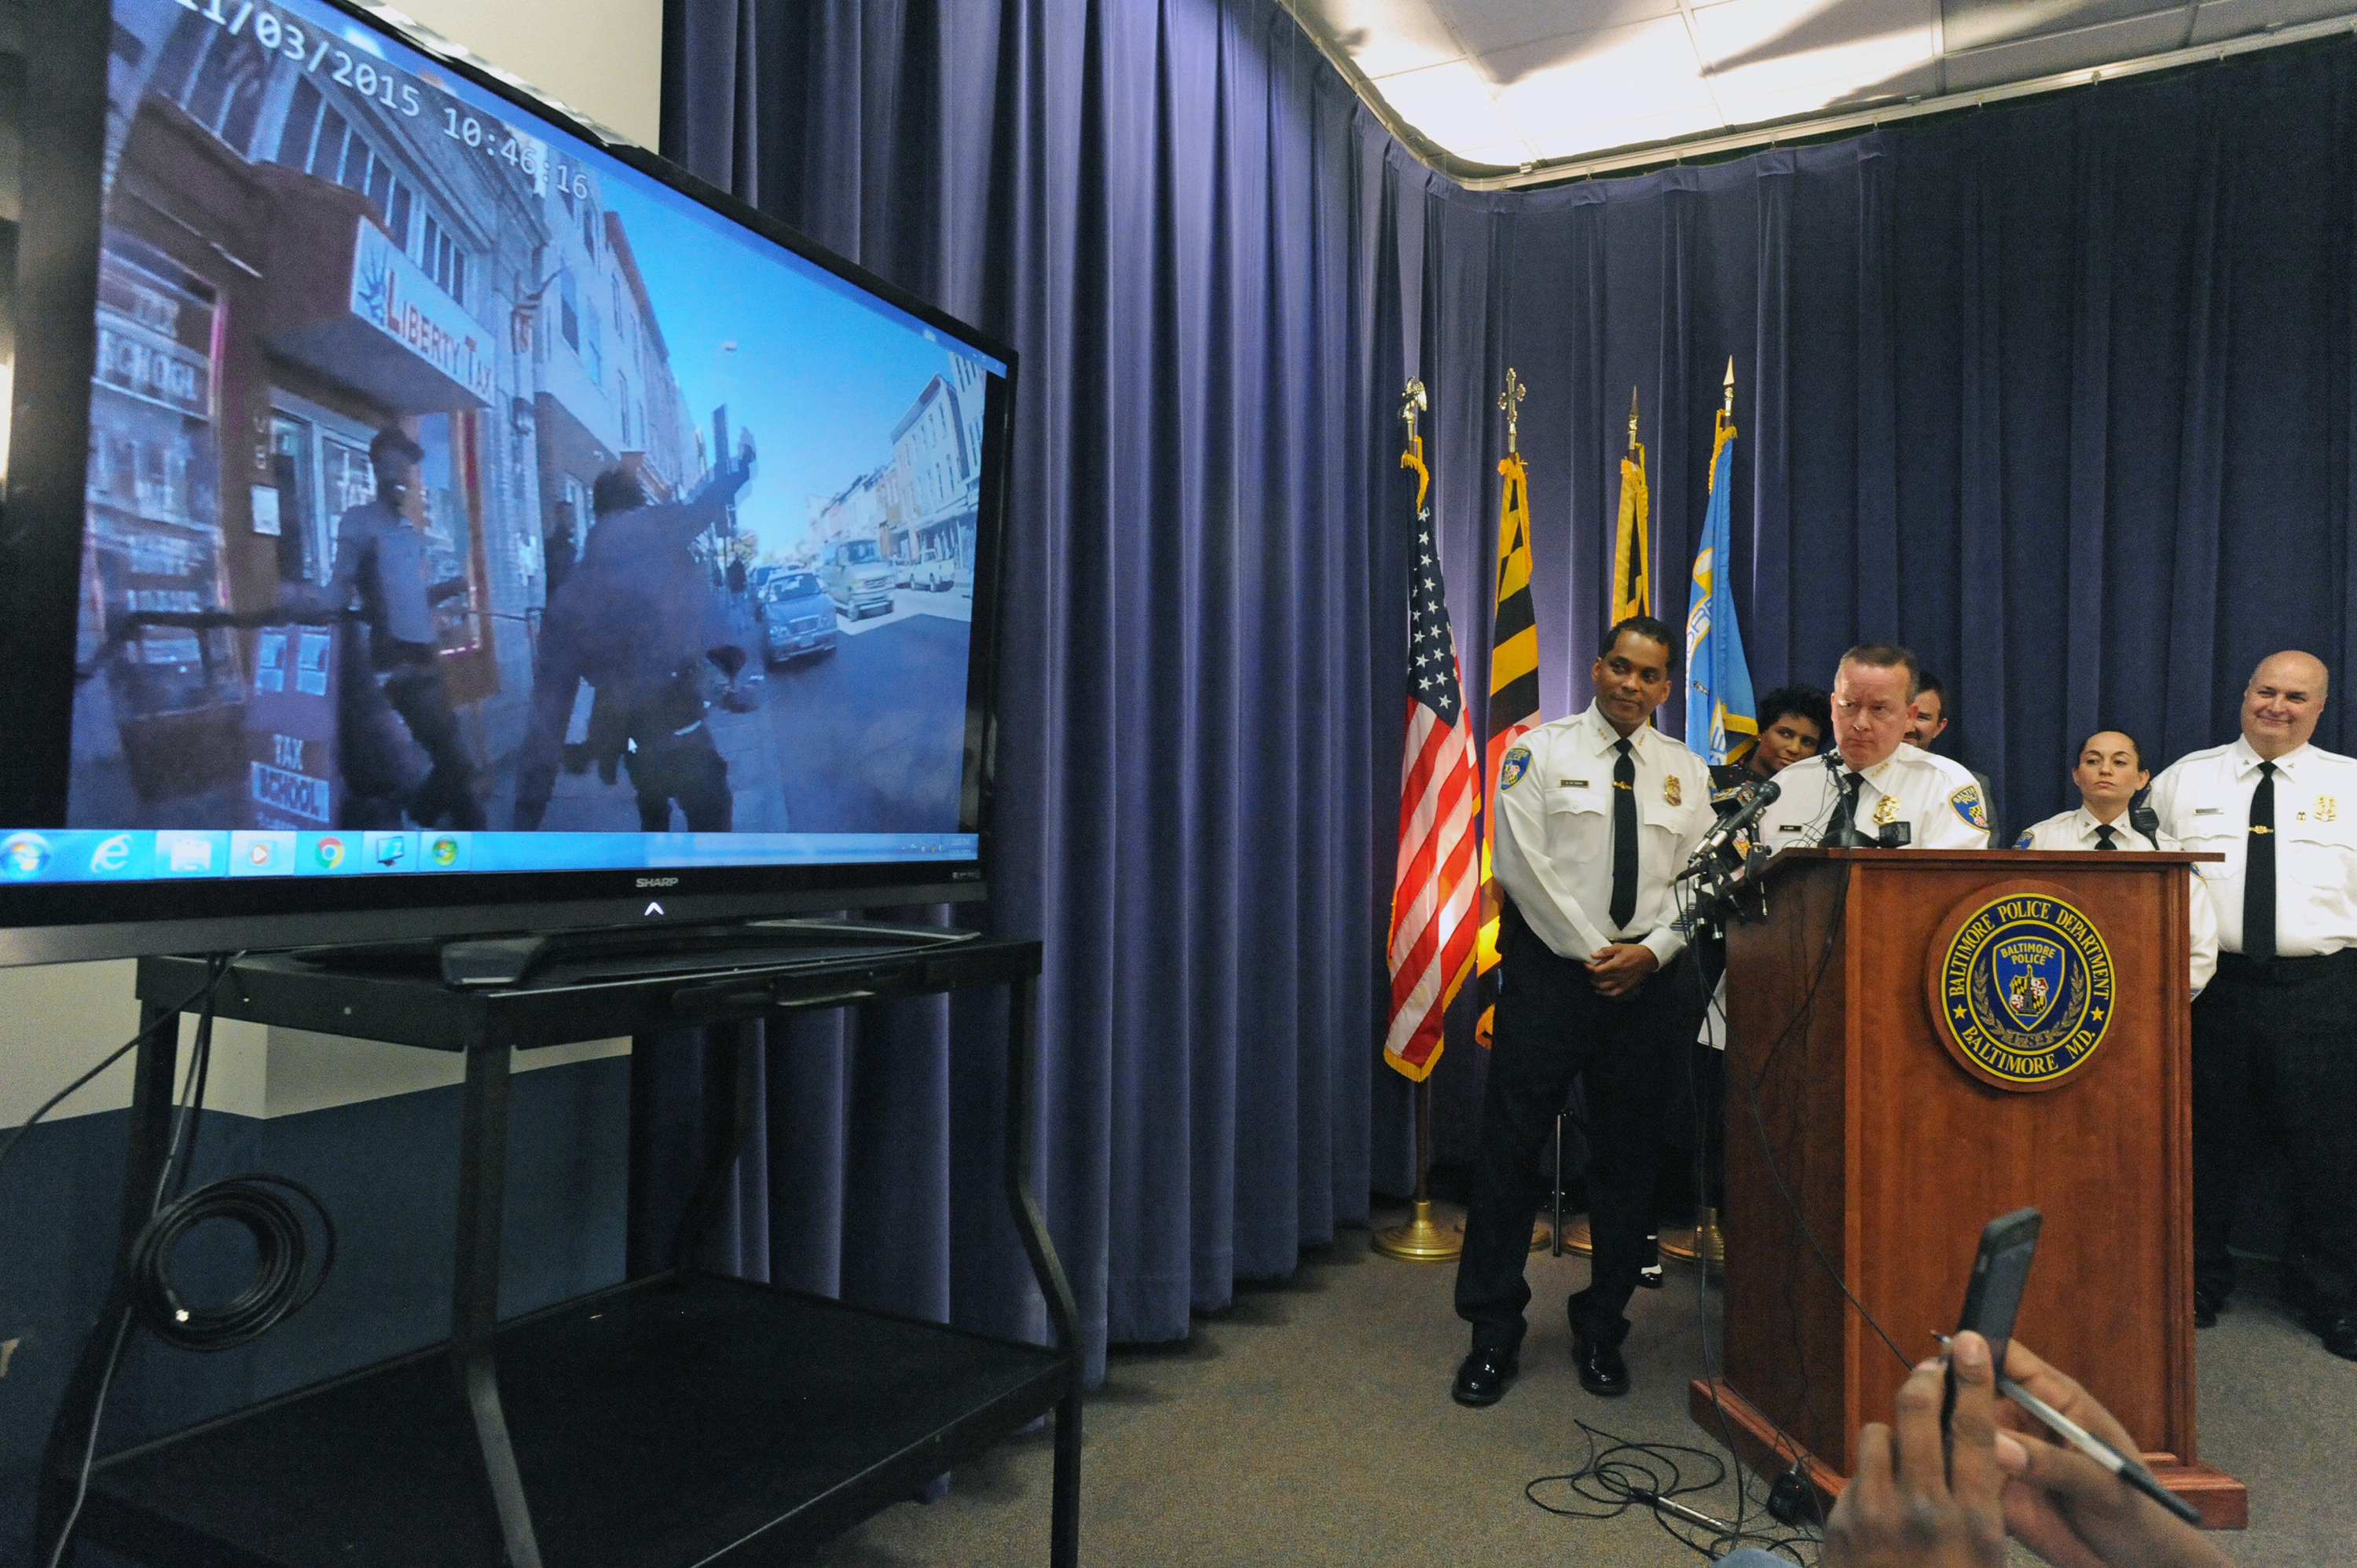 Baltimore officers on body camera pilot: ëWhen can we get these back?í